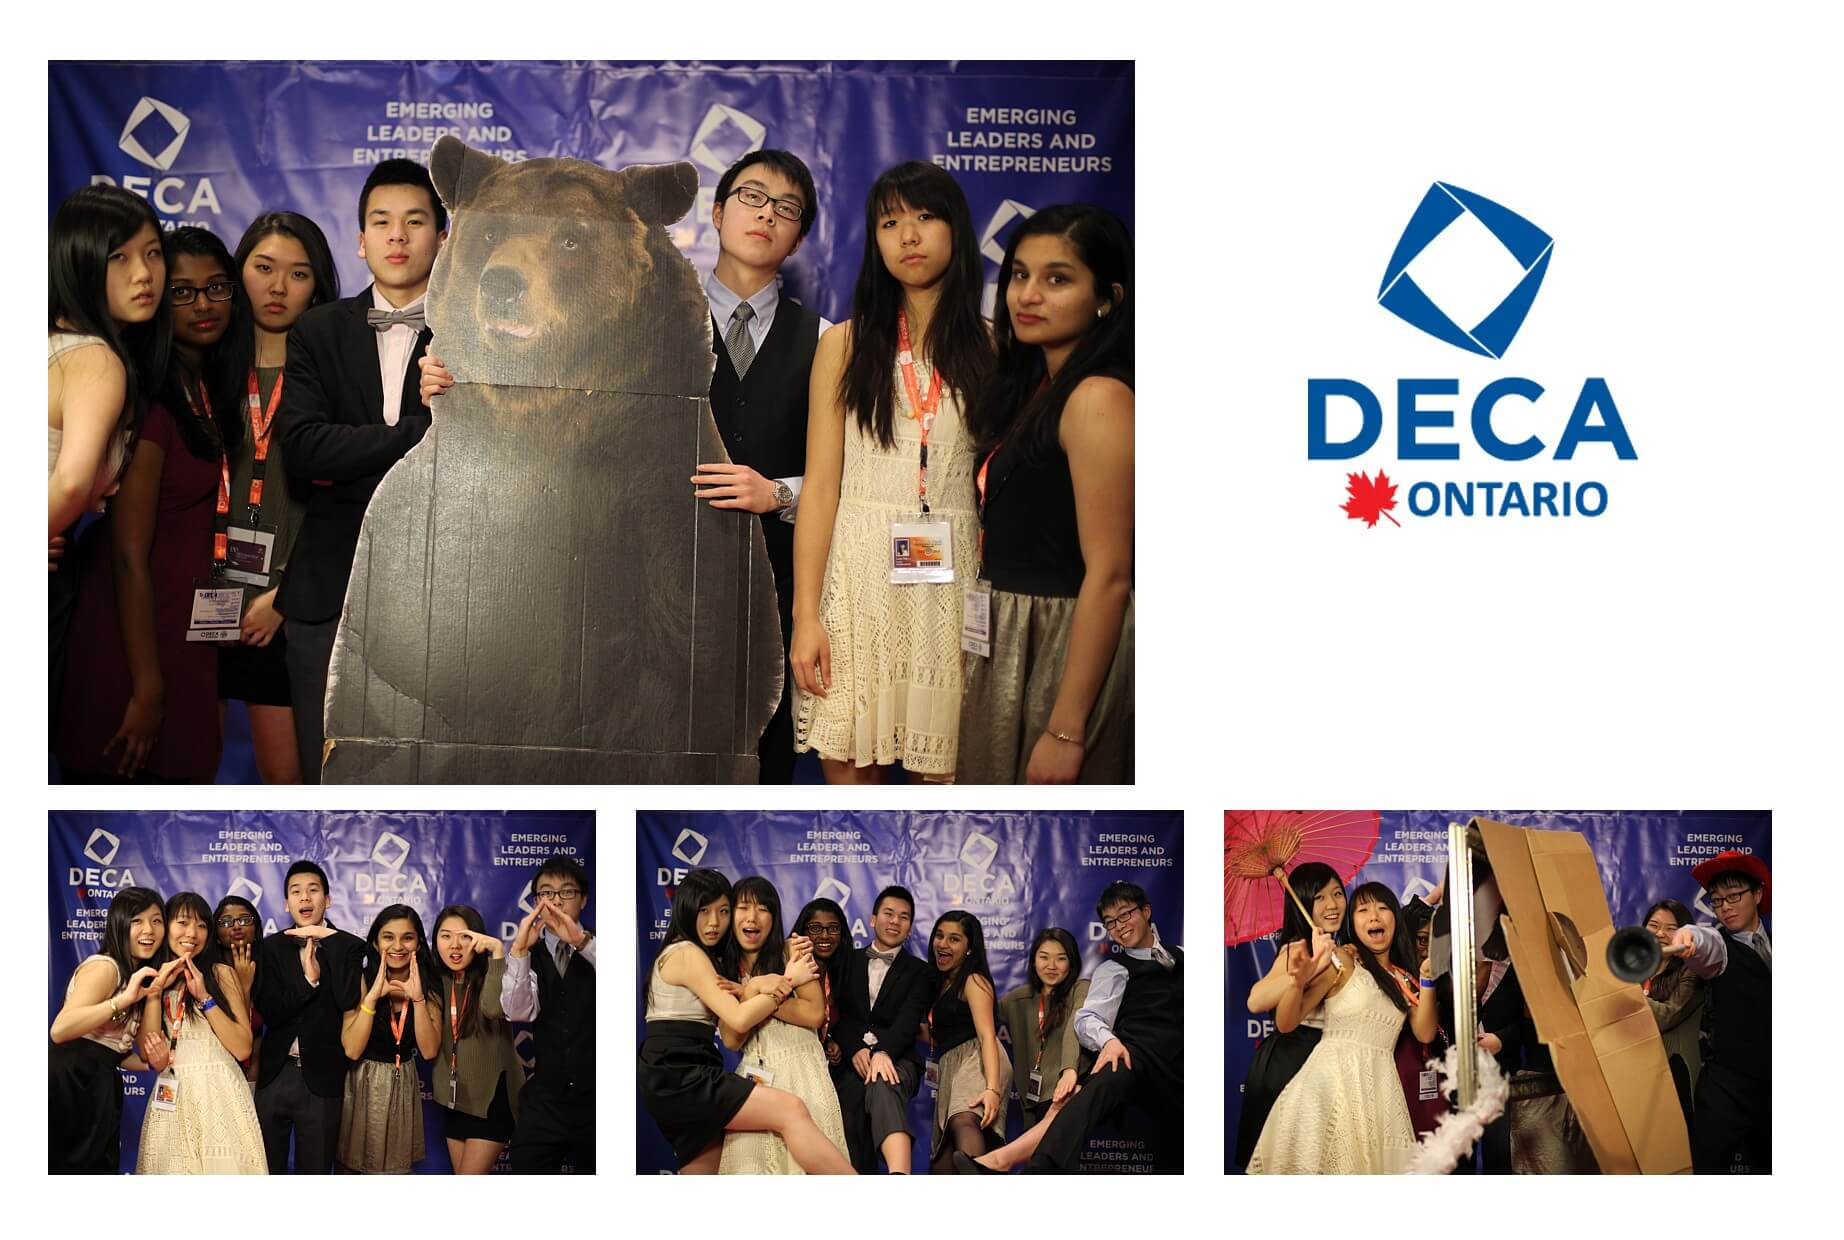 deca ontario 2014 conference photobooth photos